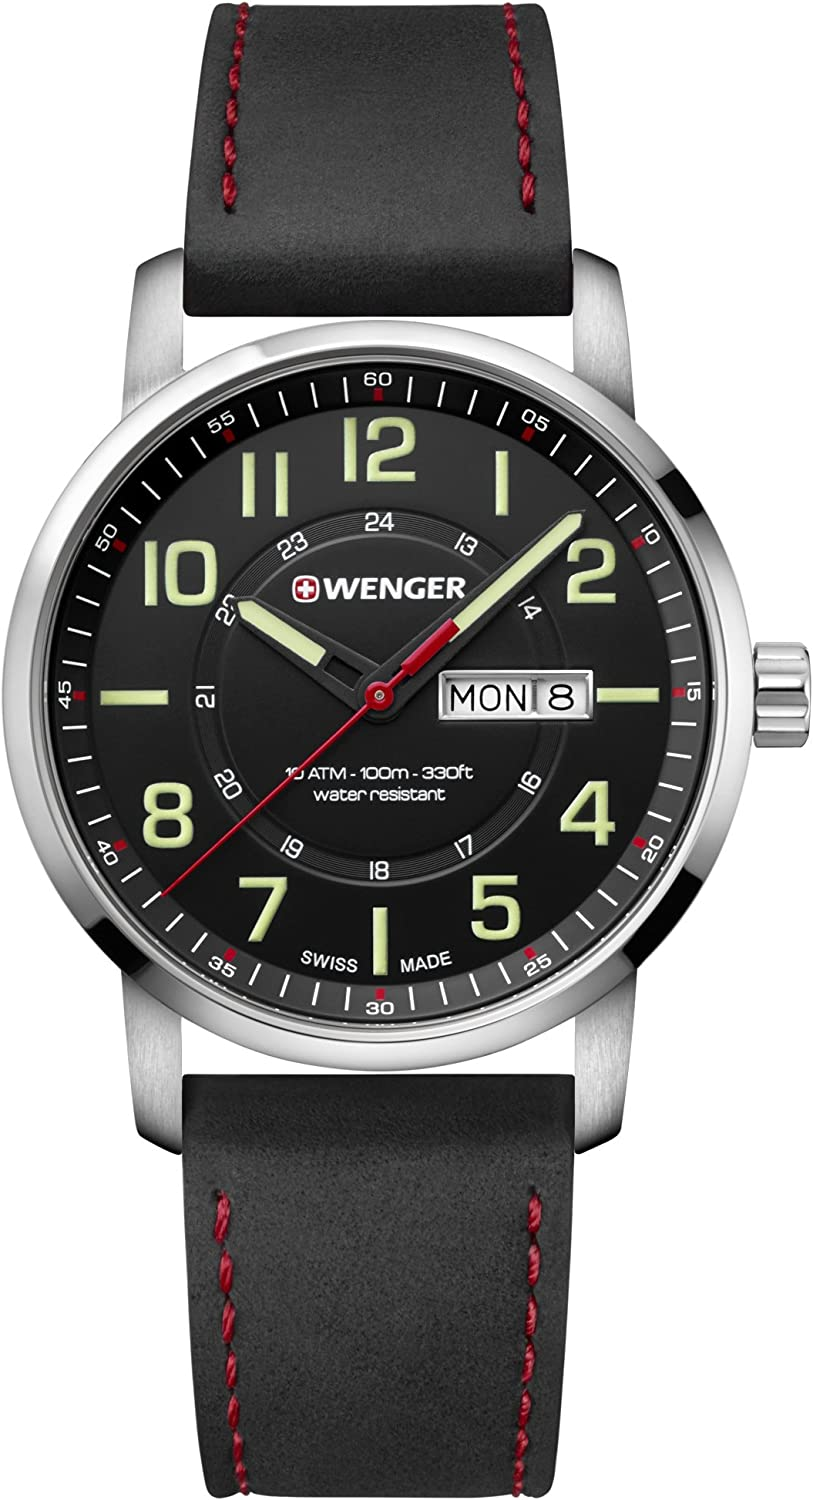 Wenger Men s Sport Stainless Steel Swiss-Quartz Watch with Leather Strap, Black, 22 Model 01.1541.101